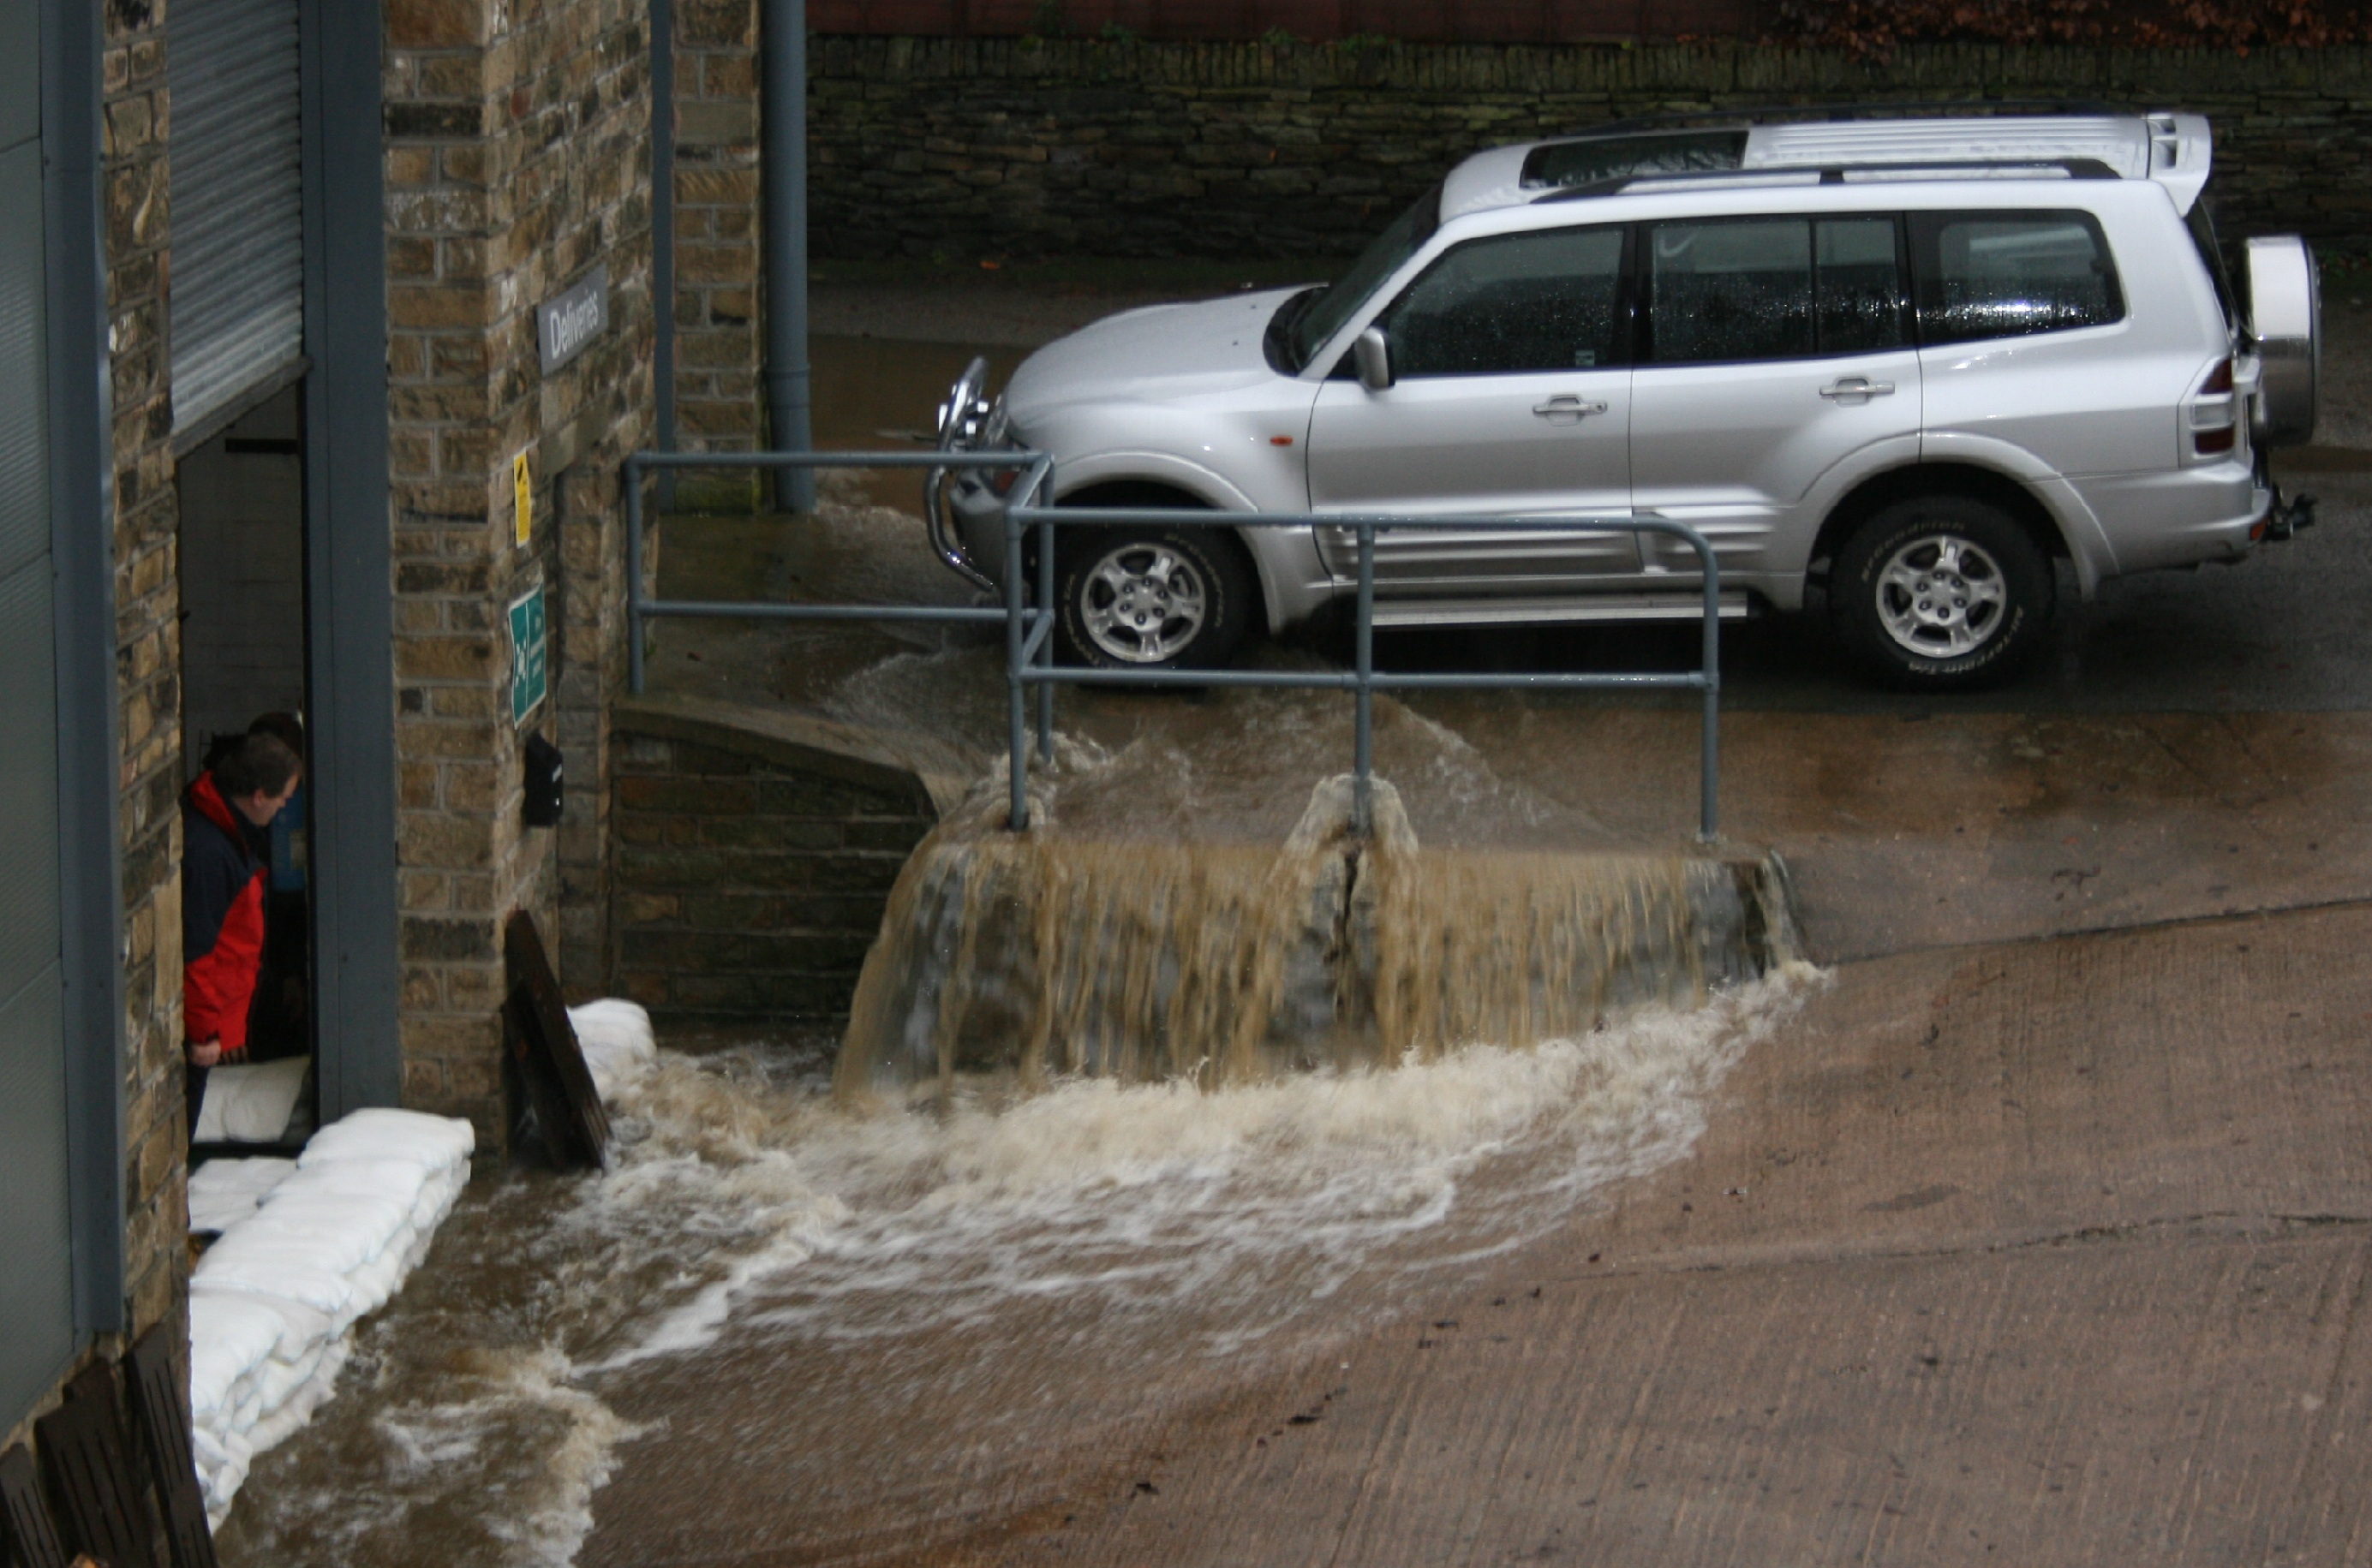 Kirkburton flood 2 close-up cropped.jpg